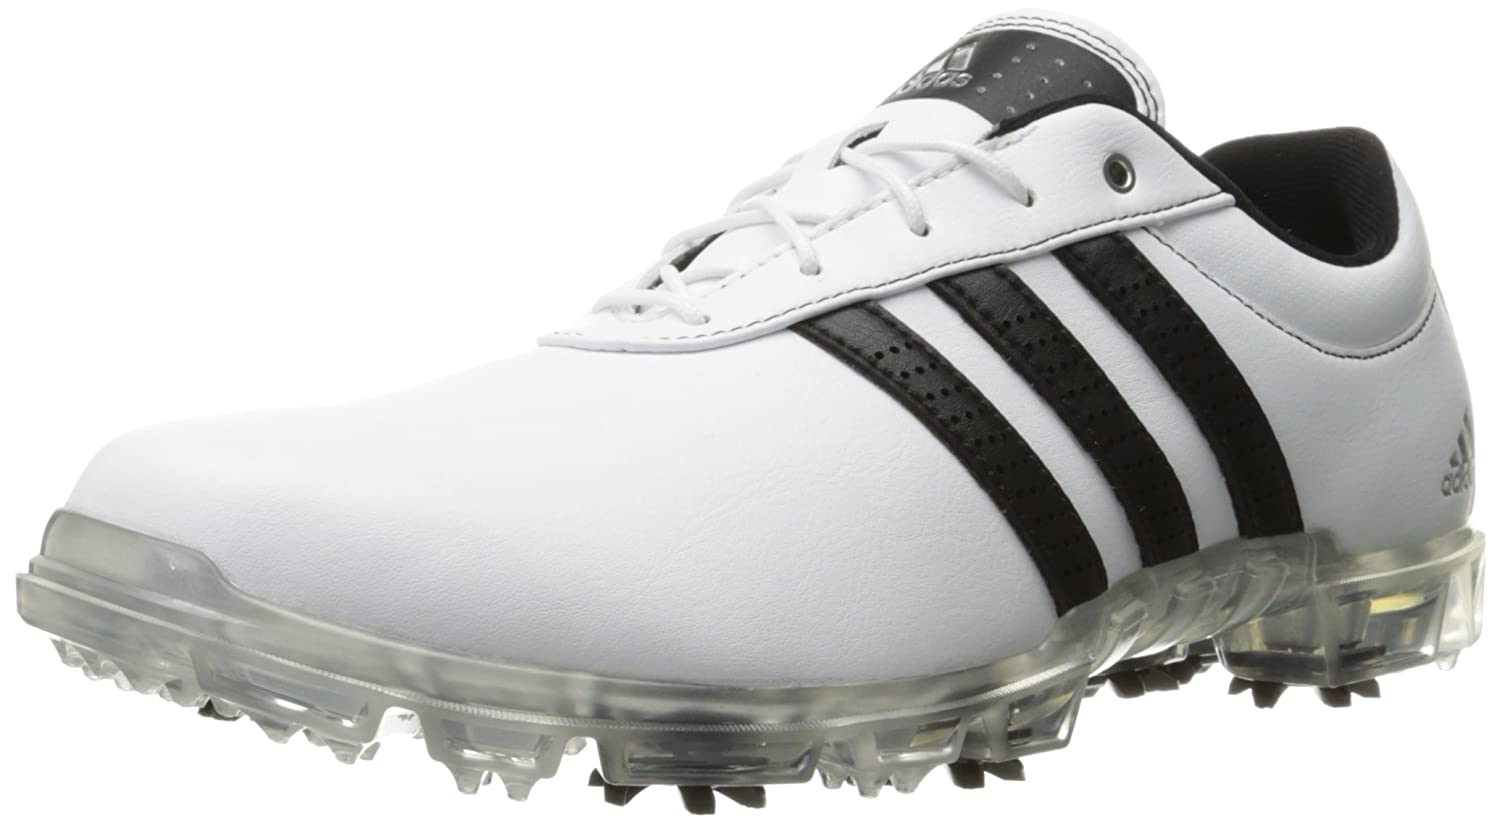 adidas Men's Adipure Flex Ftwwht/Cblac Golf Shoe: Buy Online at Low Prices  in India - Amazon.in